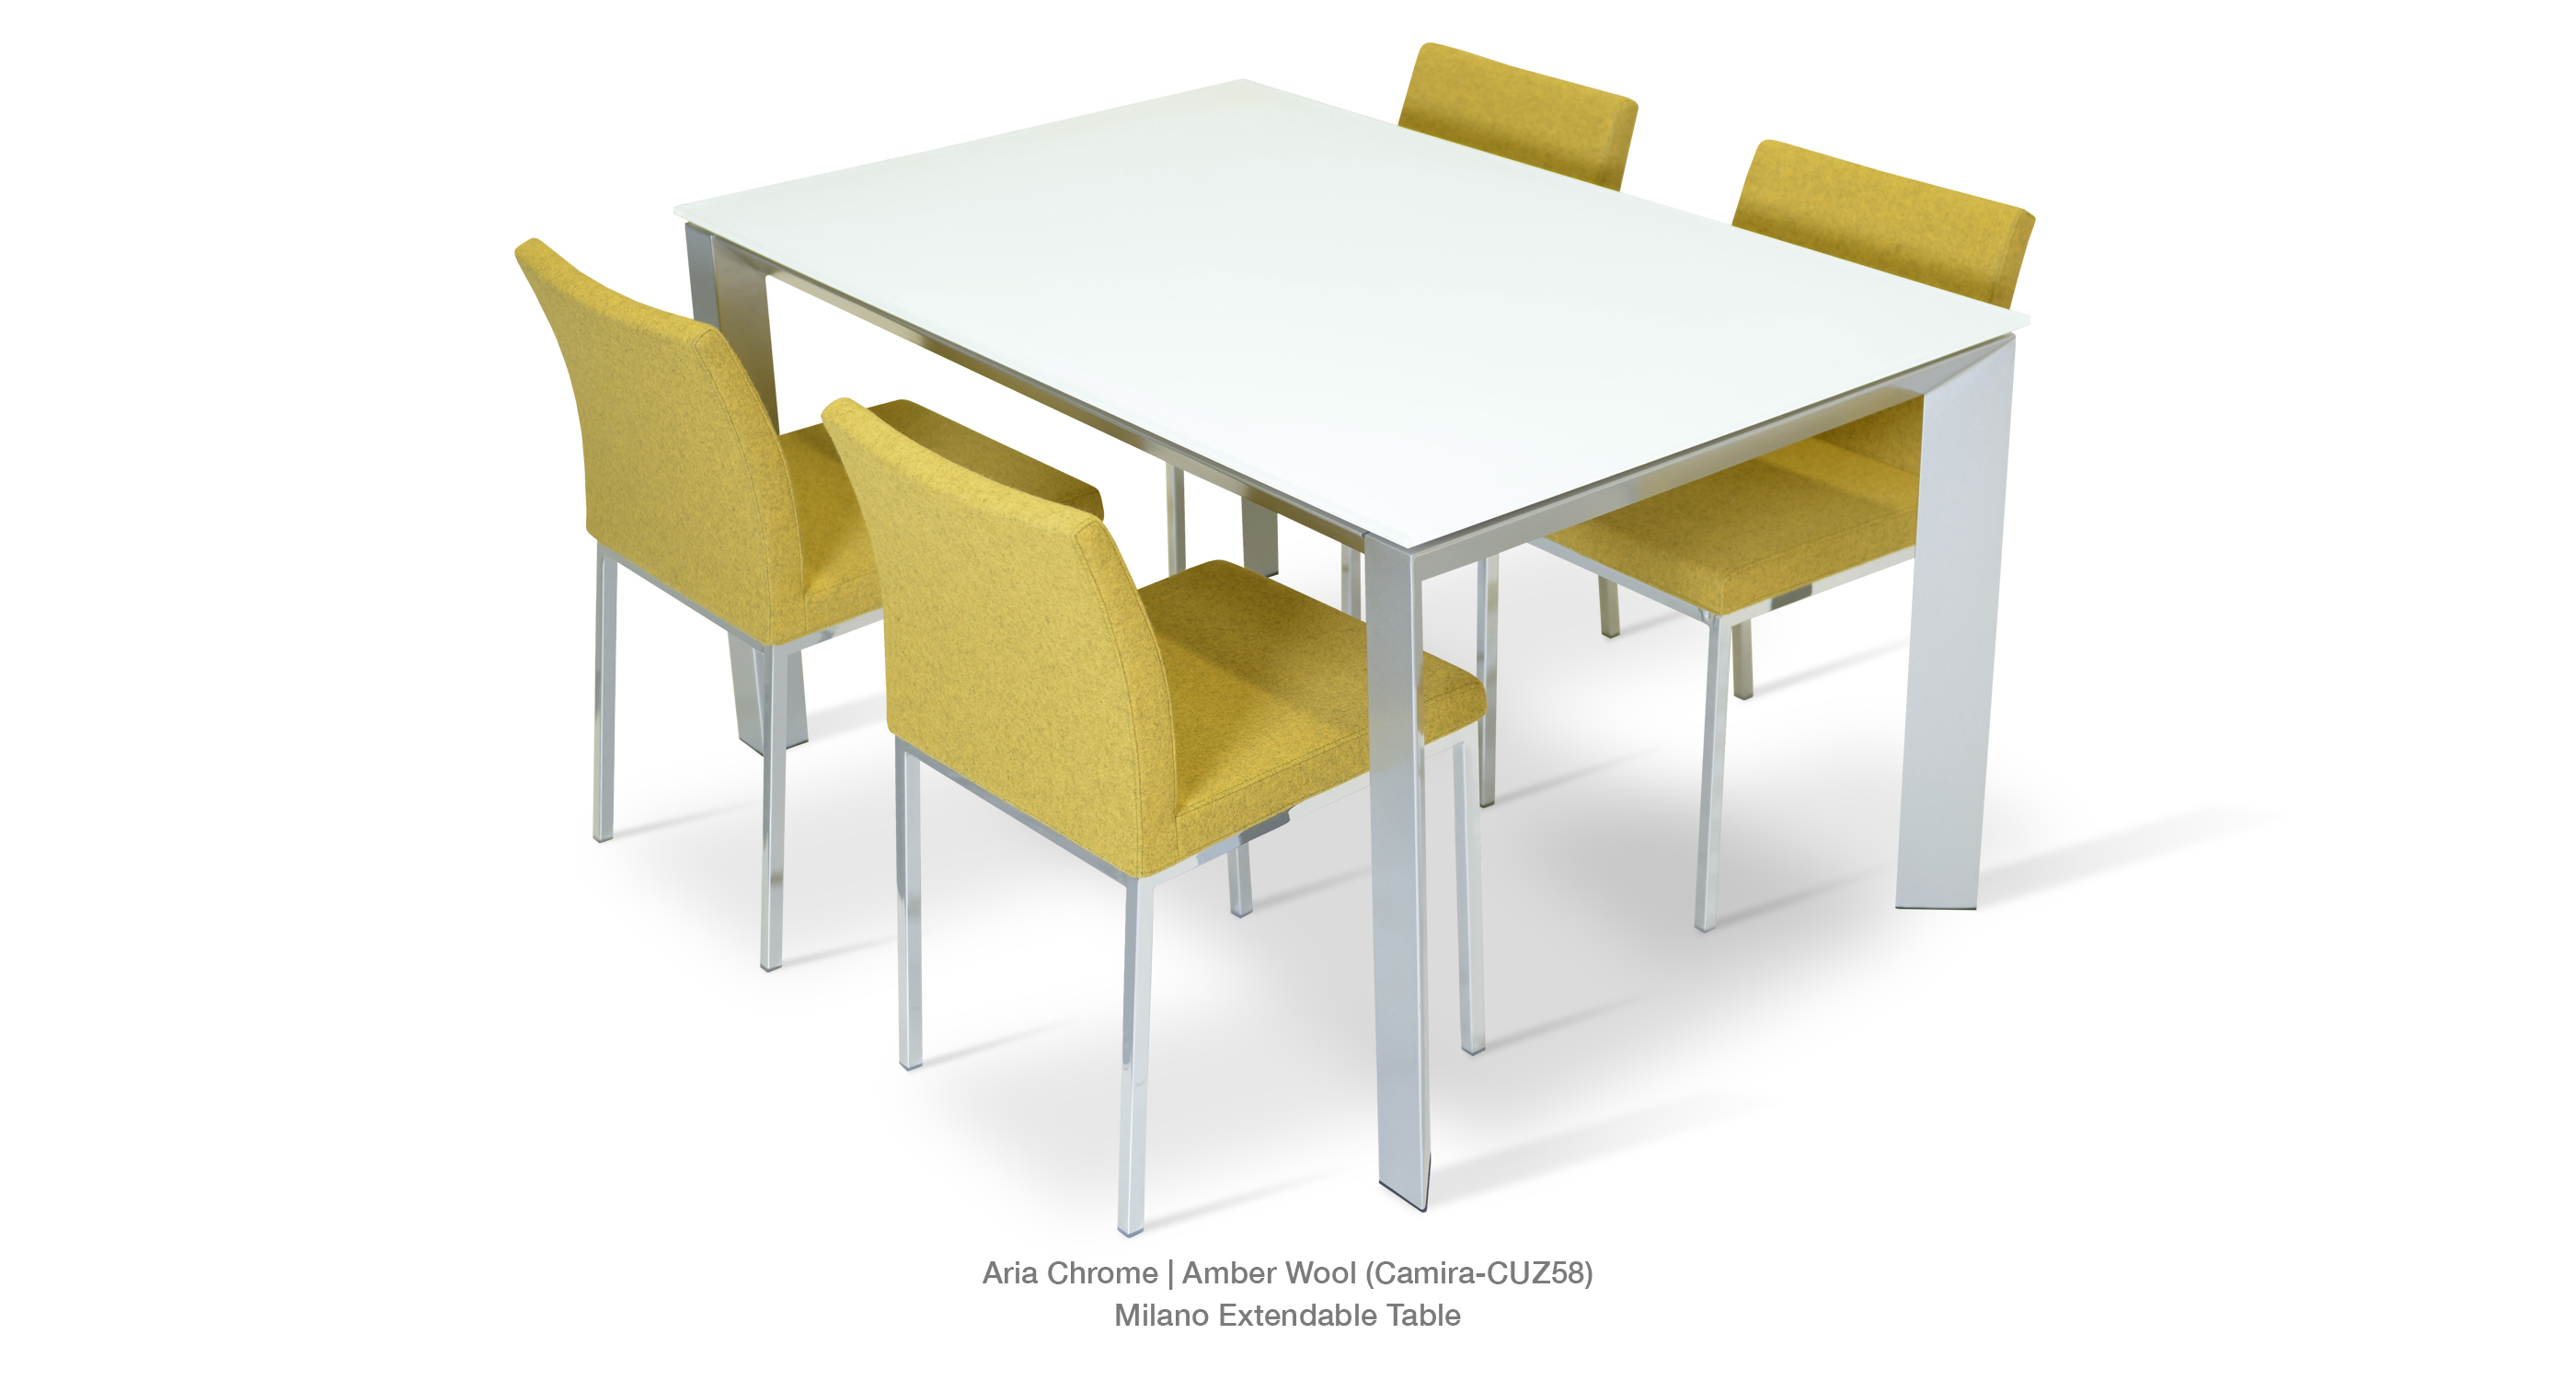 aria chrome with milano table modern dining chairs   aria metal by sohoconcept  rh   sohoconcept com